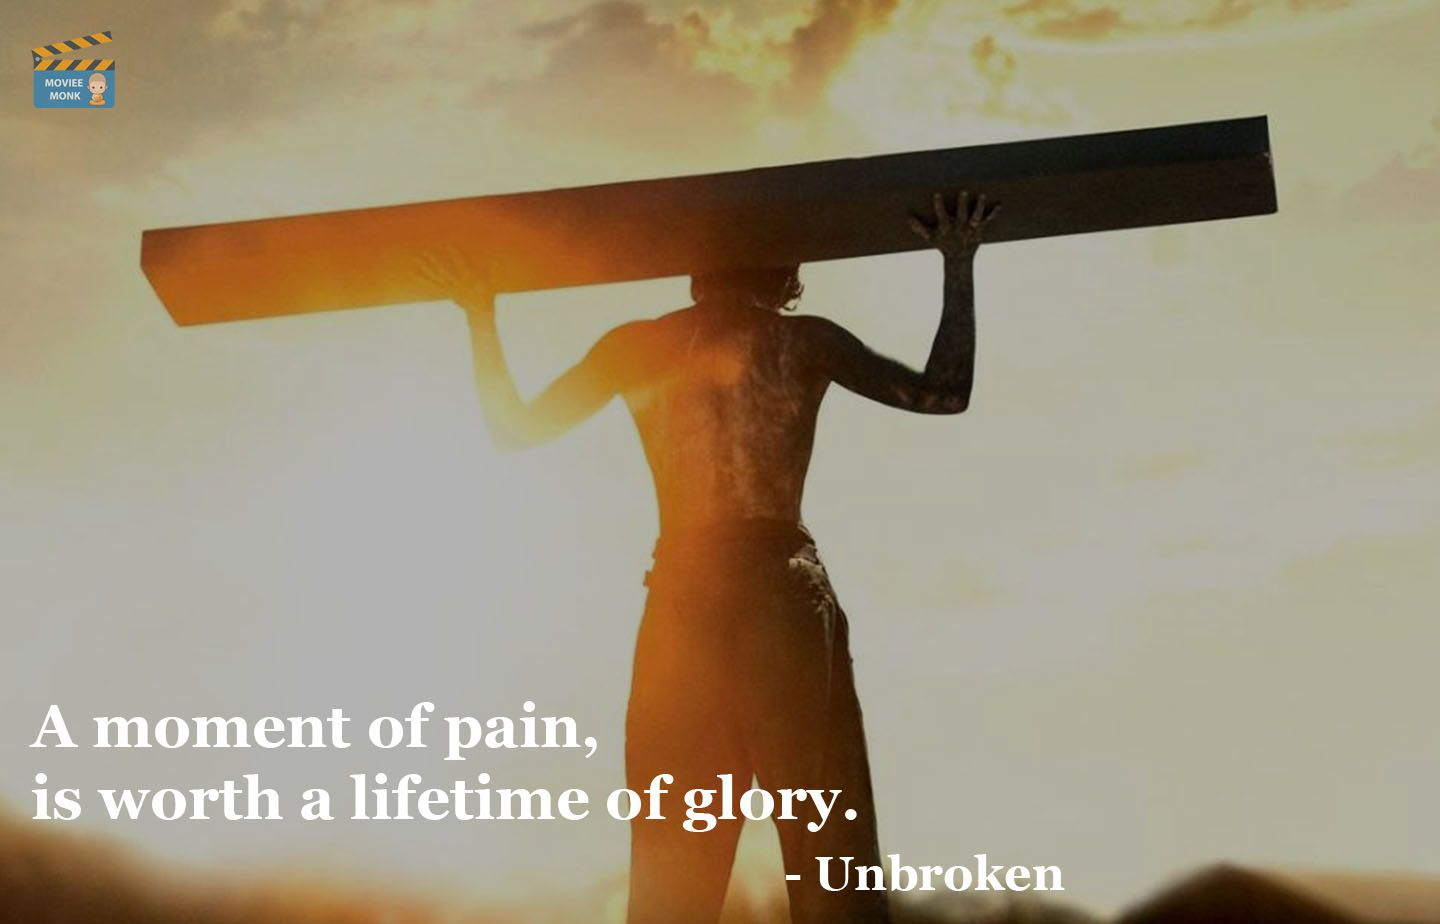 Unbroken Quotes Fascinating Quotes From Unbroken Movie  Google Search  Fight For Faith . Decorating Design